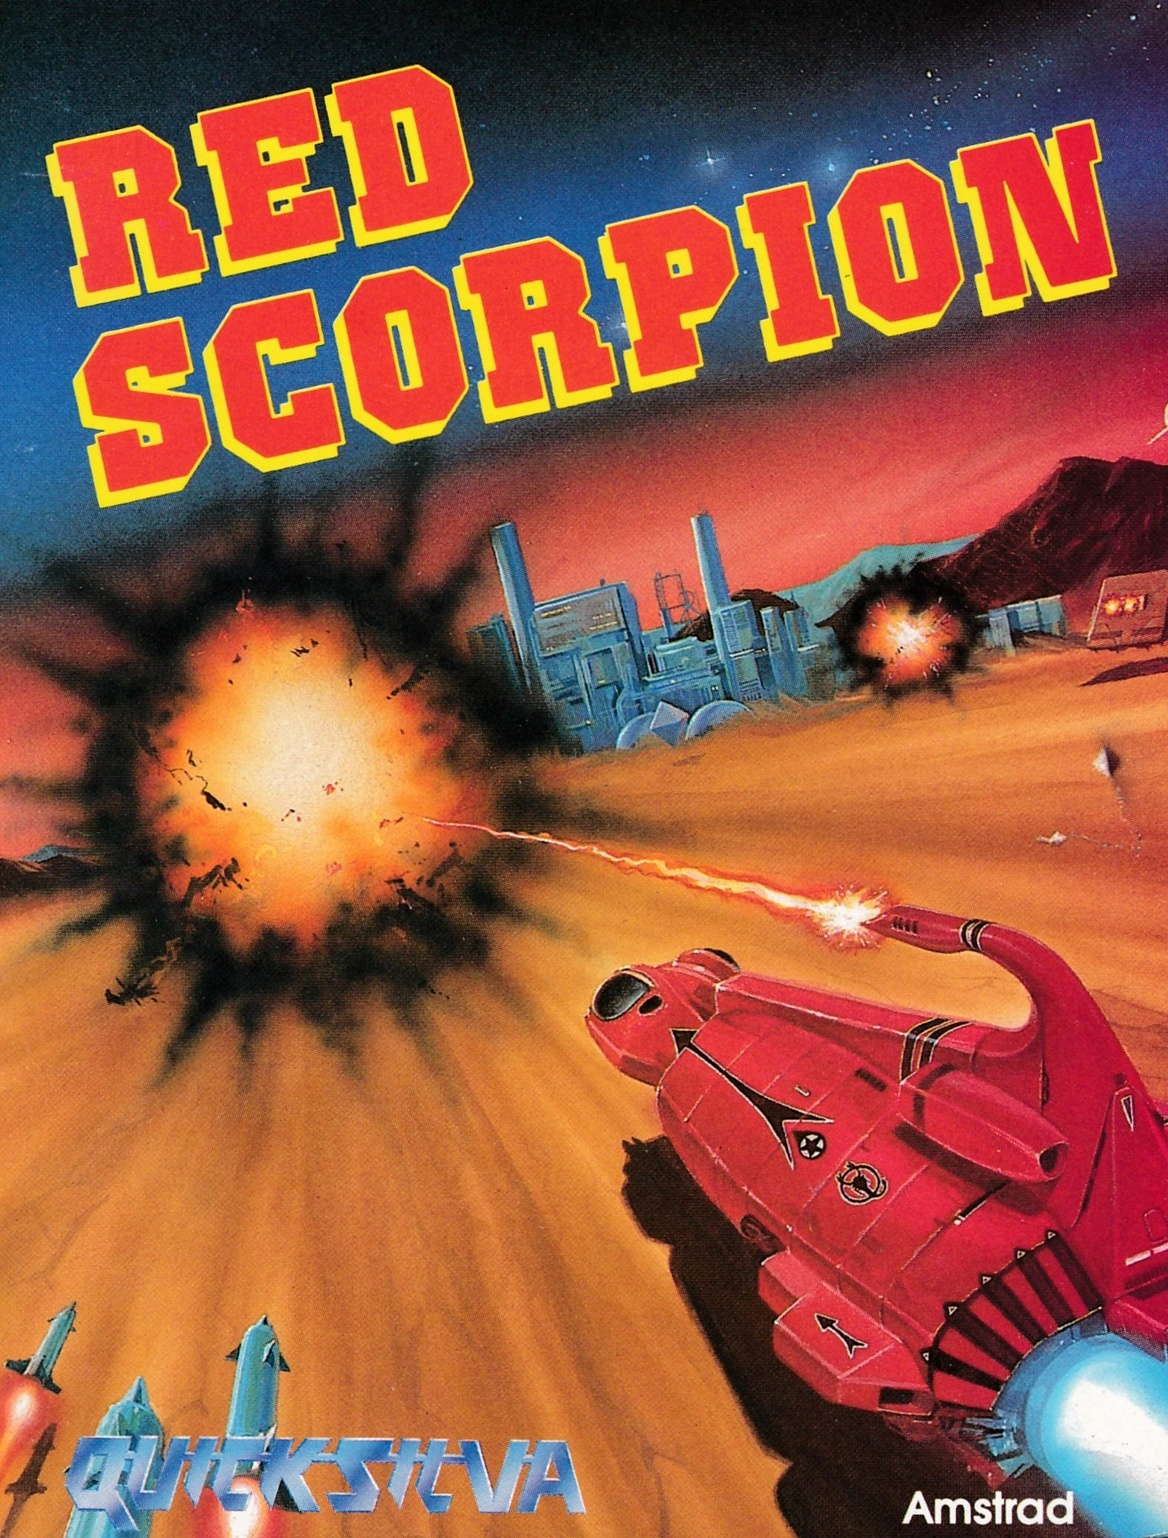 cover of the Amstrad CPC game Red Scorpion  by GameBase CPC